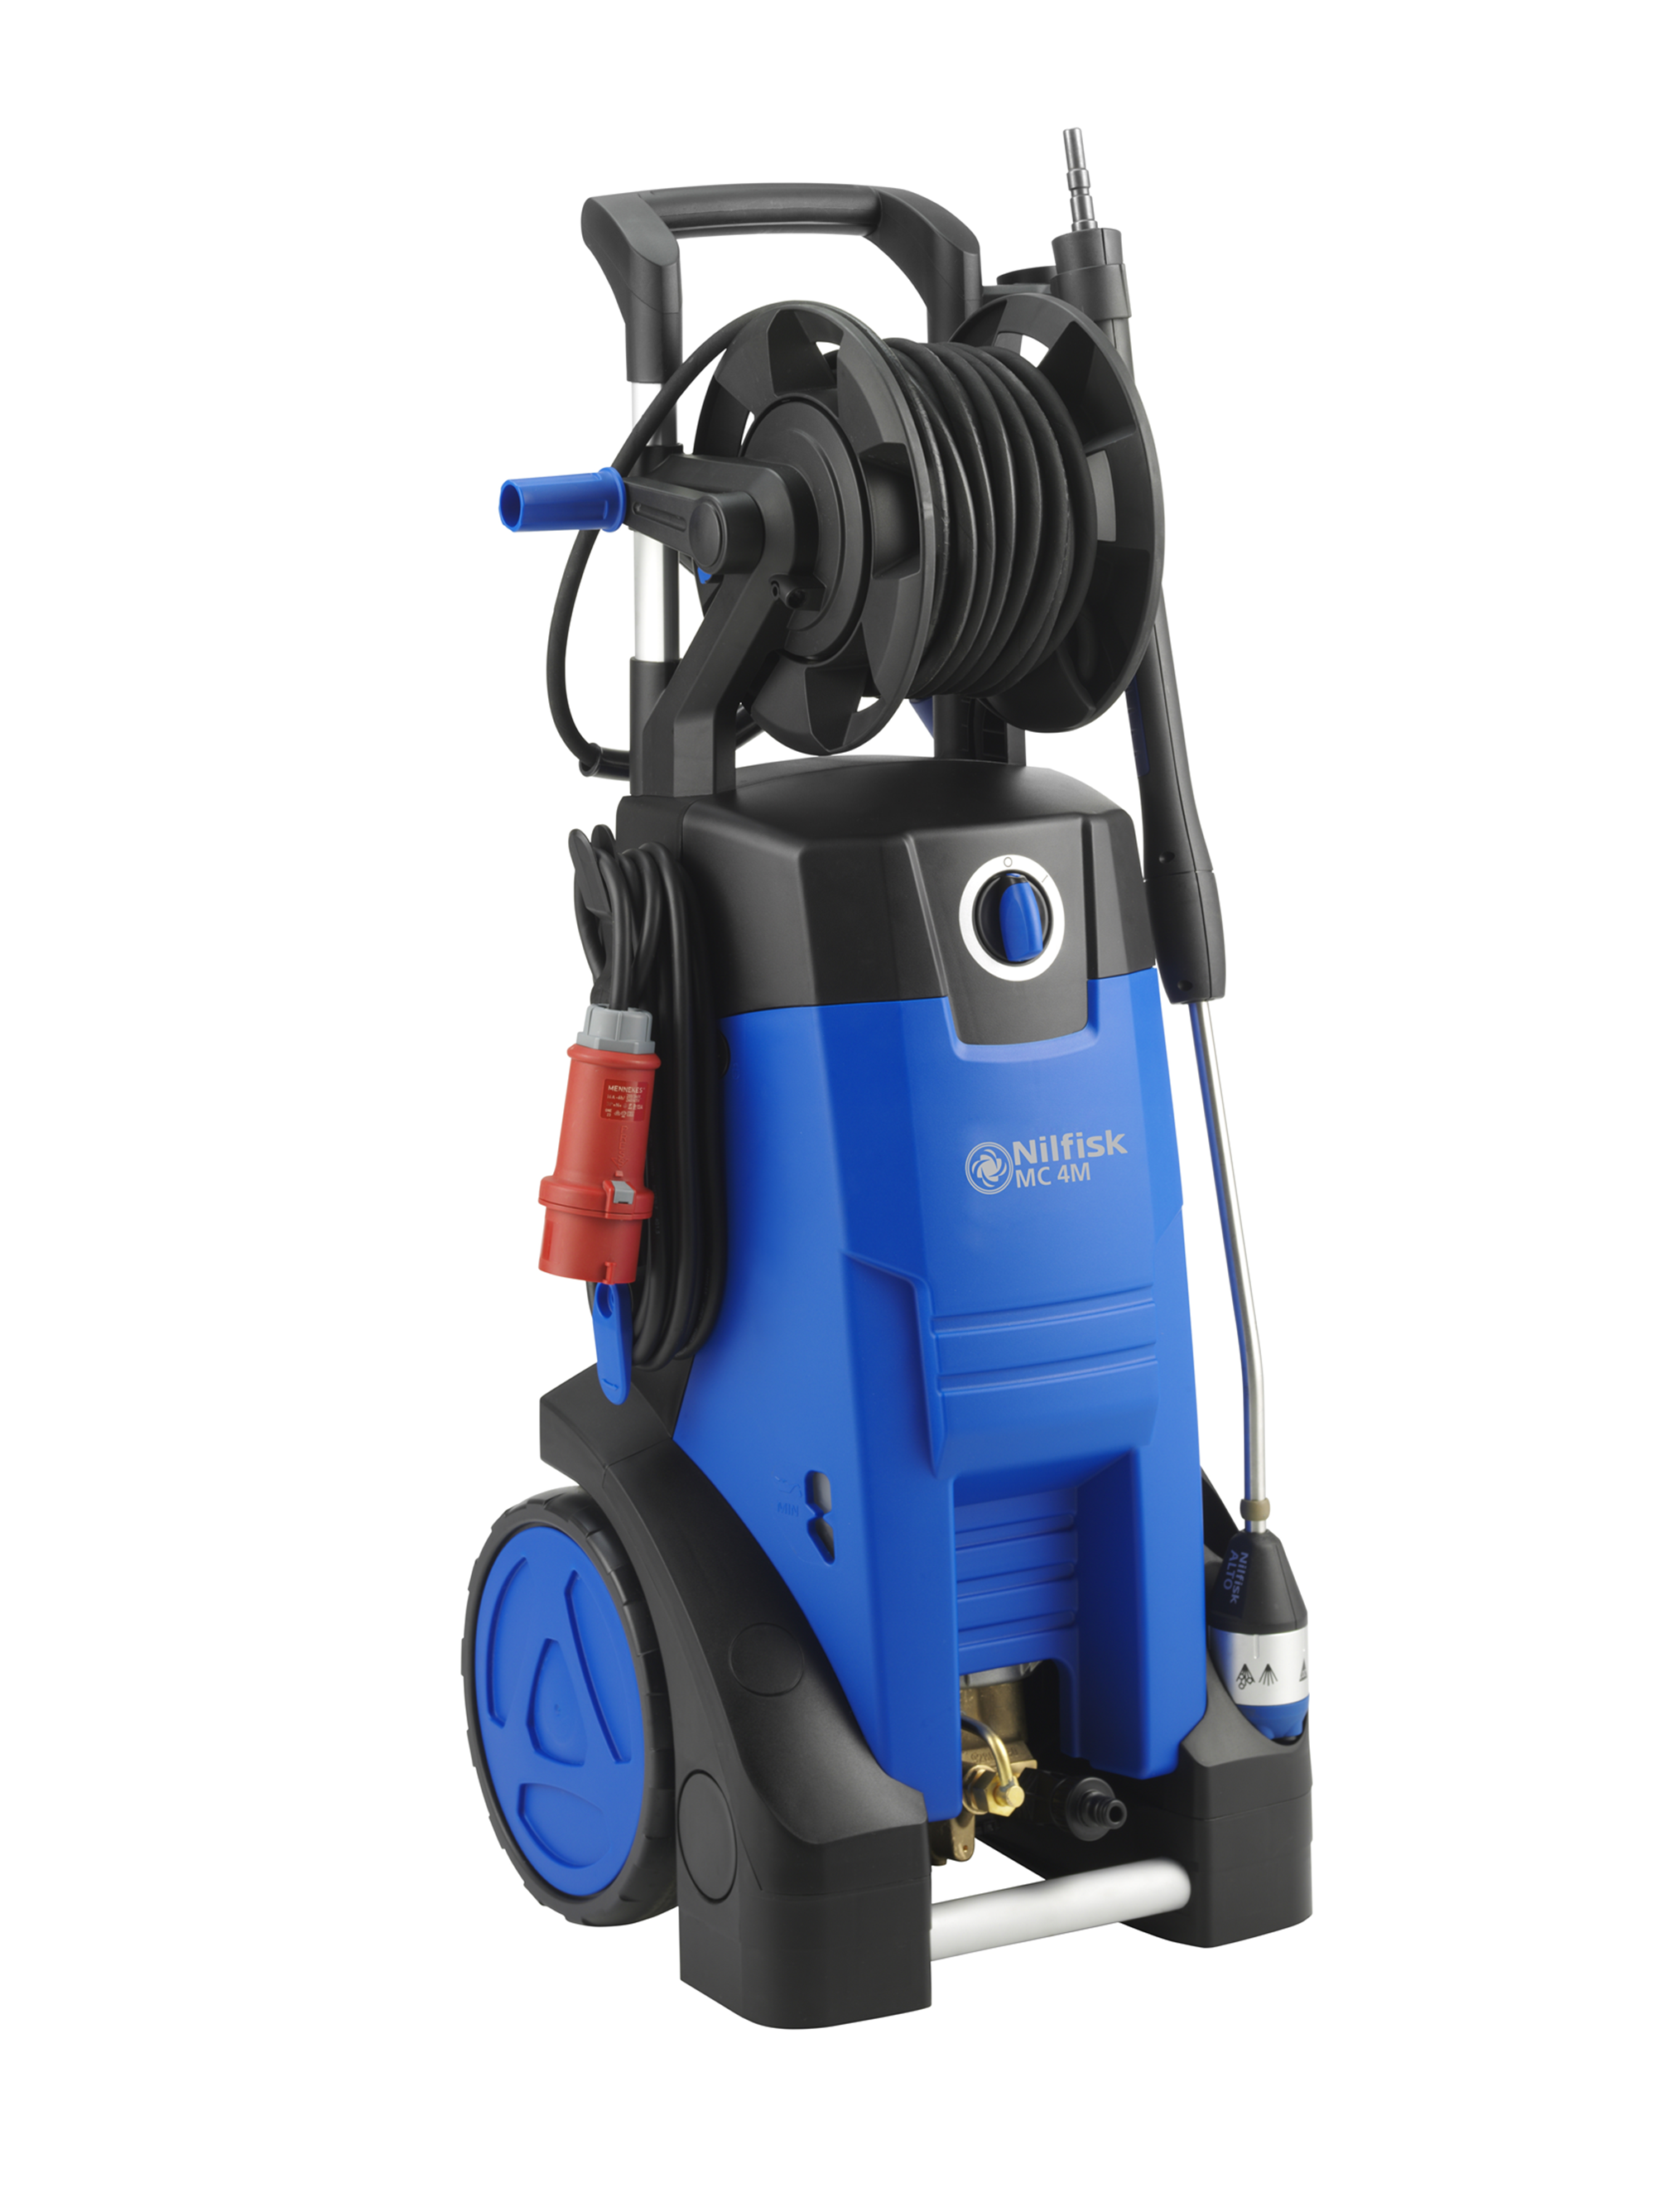 Product, Pressure washers, Mobile pressure washers, Mobile cold water pressure washers, Medium, Nilfisk, MC 4M-180/740 400/3/50 EU